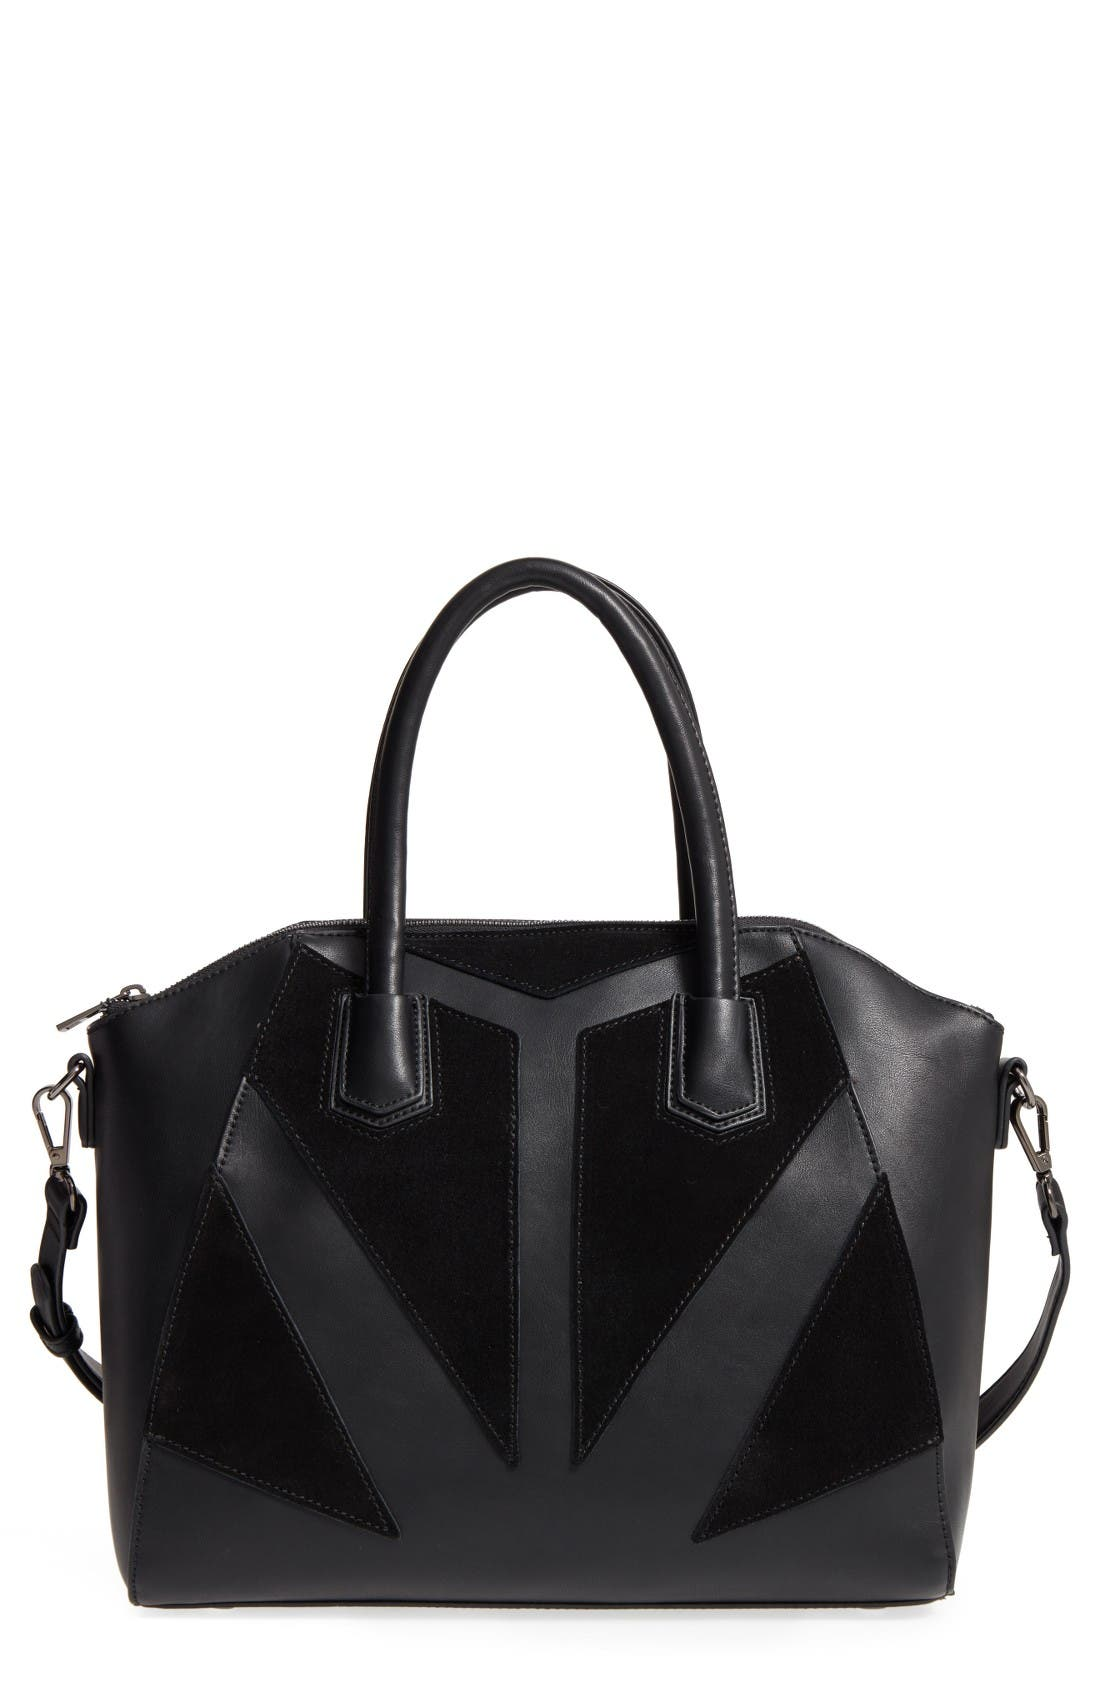 Alternate Image 1 Selected - Sole Society Rosamund Faux Leather and Faux Suede Satchel